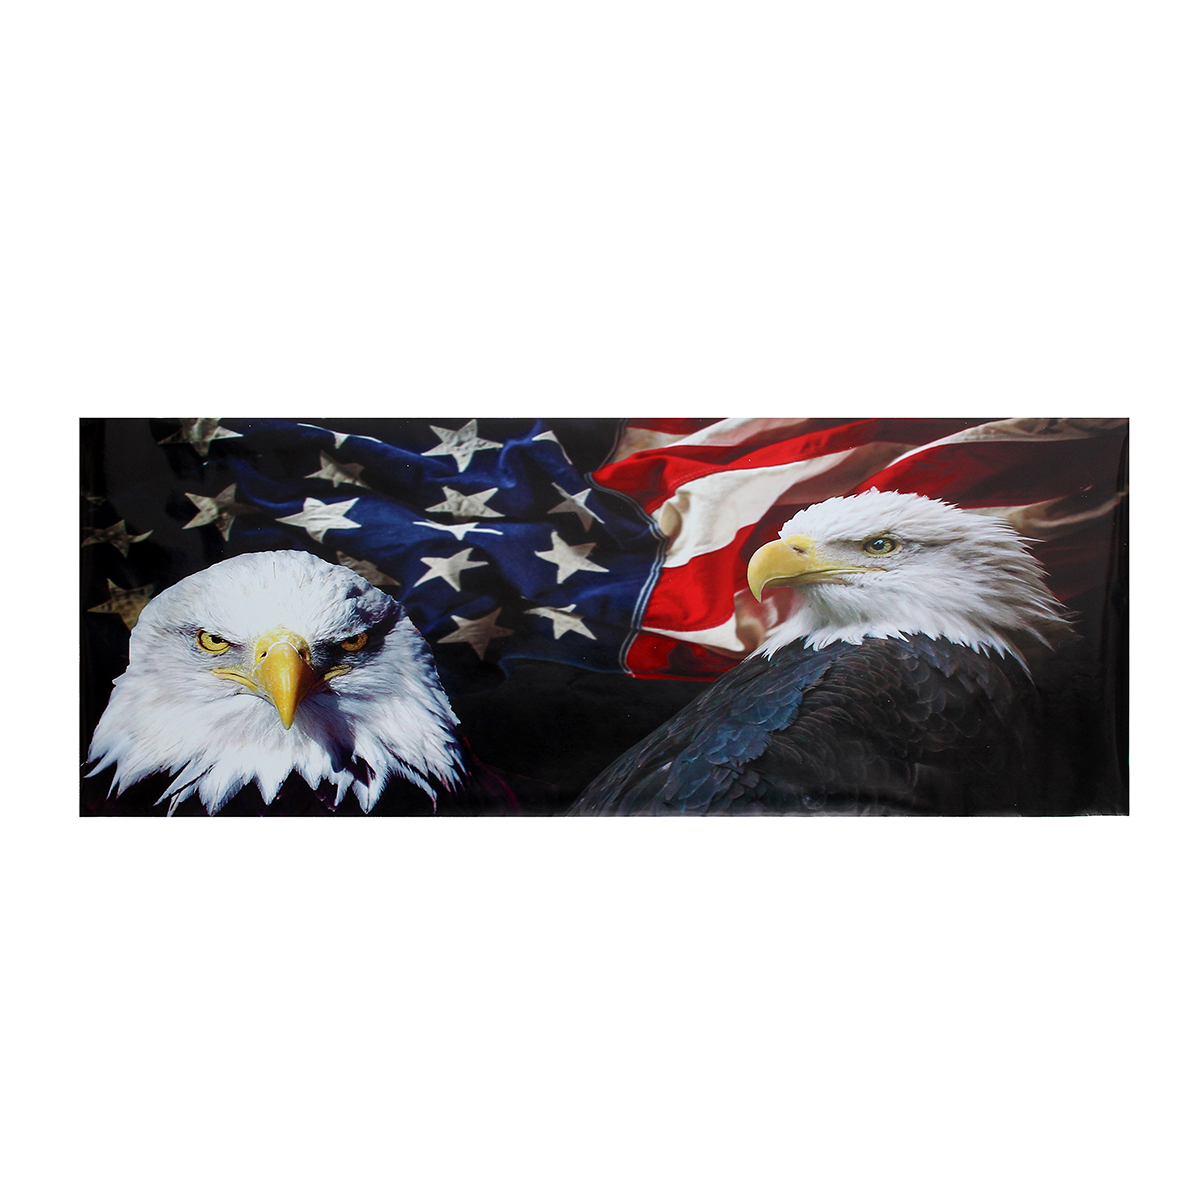 167x63.5cm T40 Eagle America Flag Tailgate Wrap Vinyl Graphic Car Decal Truck Rear Wrap Car Stickers